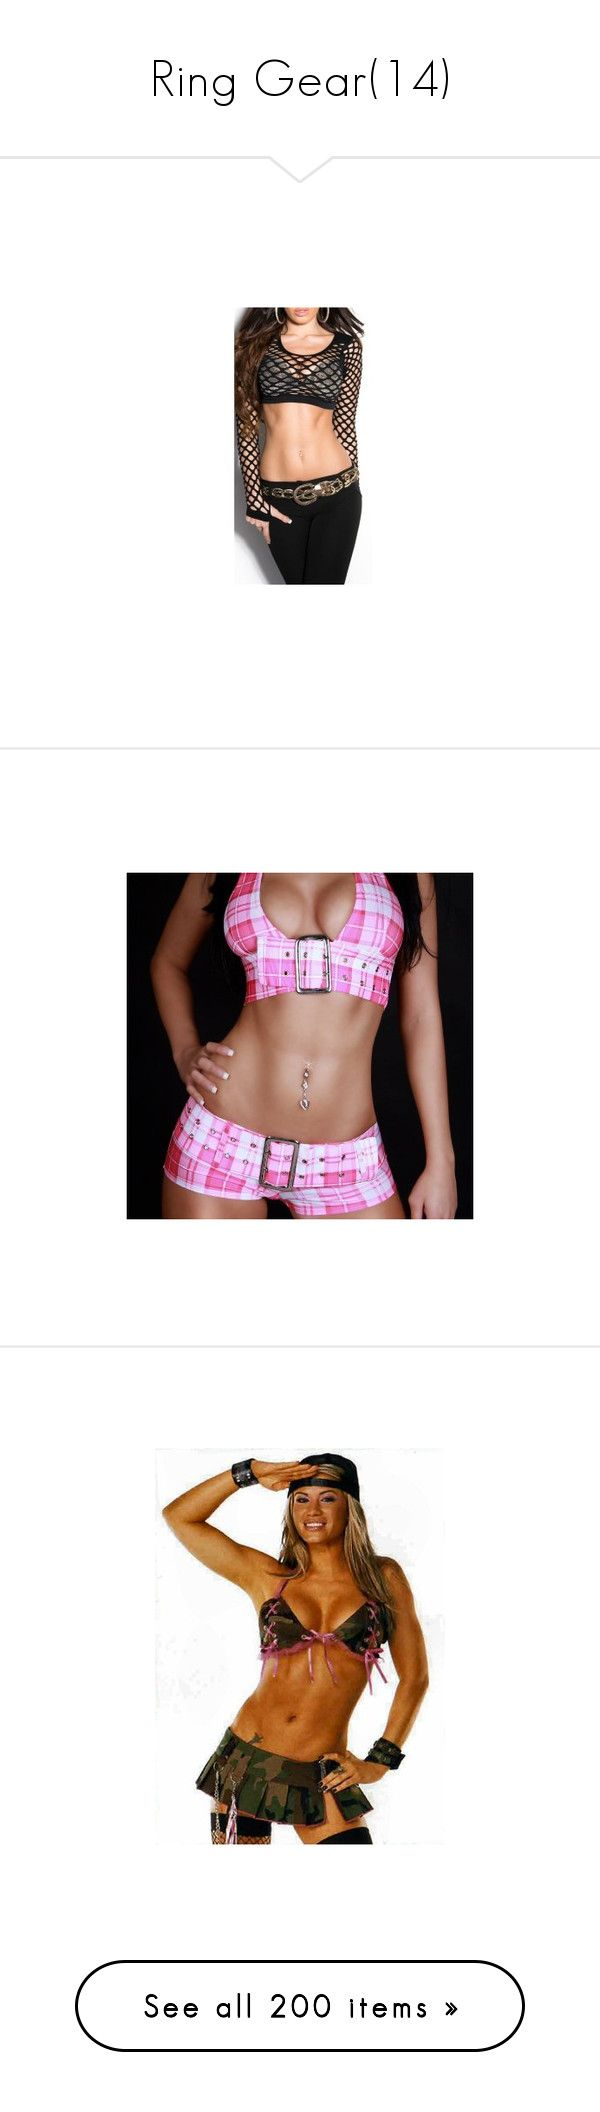 """""""Ring Gear(14)"""" by jamiehemmings19 ❤ liked on Polyvore featuring tops, shirts, outfits, attire, wrestling, wrestling outfits, diva outfit, ashley massaro, wwe and catch"""